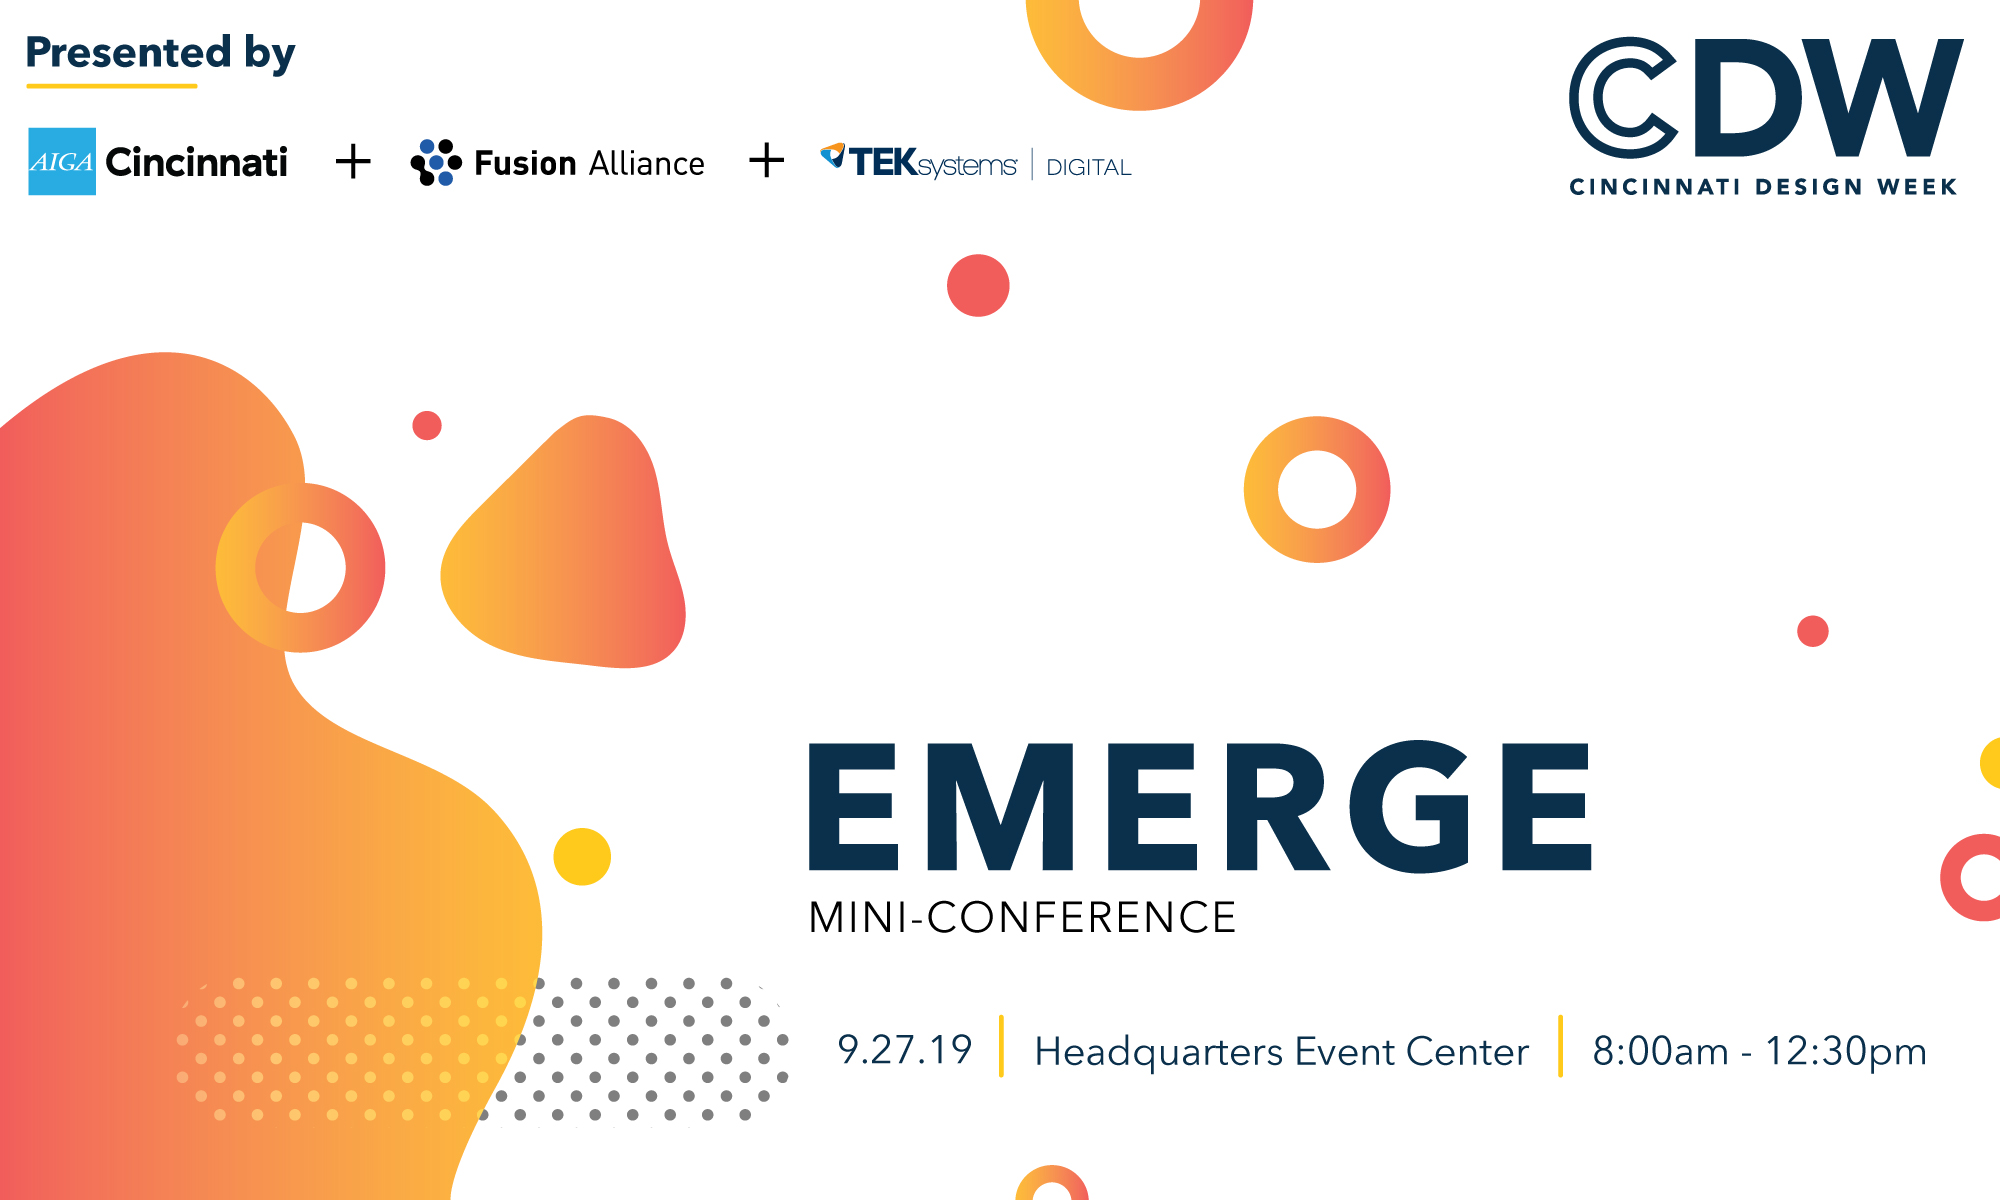 EMERGE Mini-Conference | AIGA Cincinnati